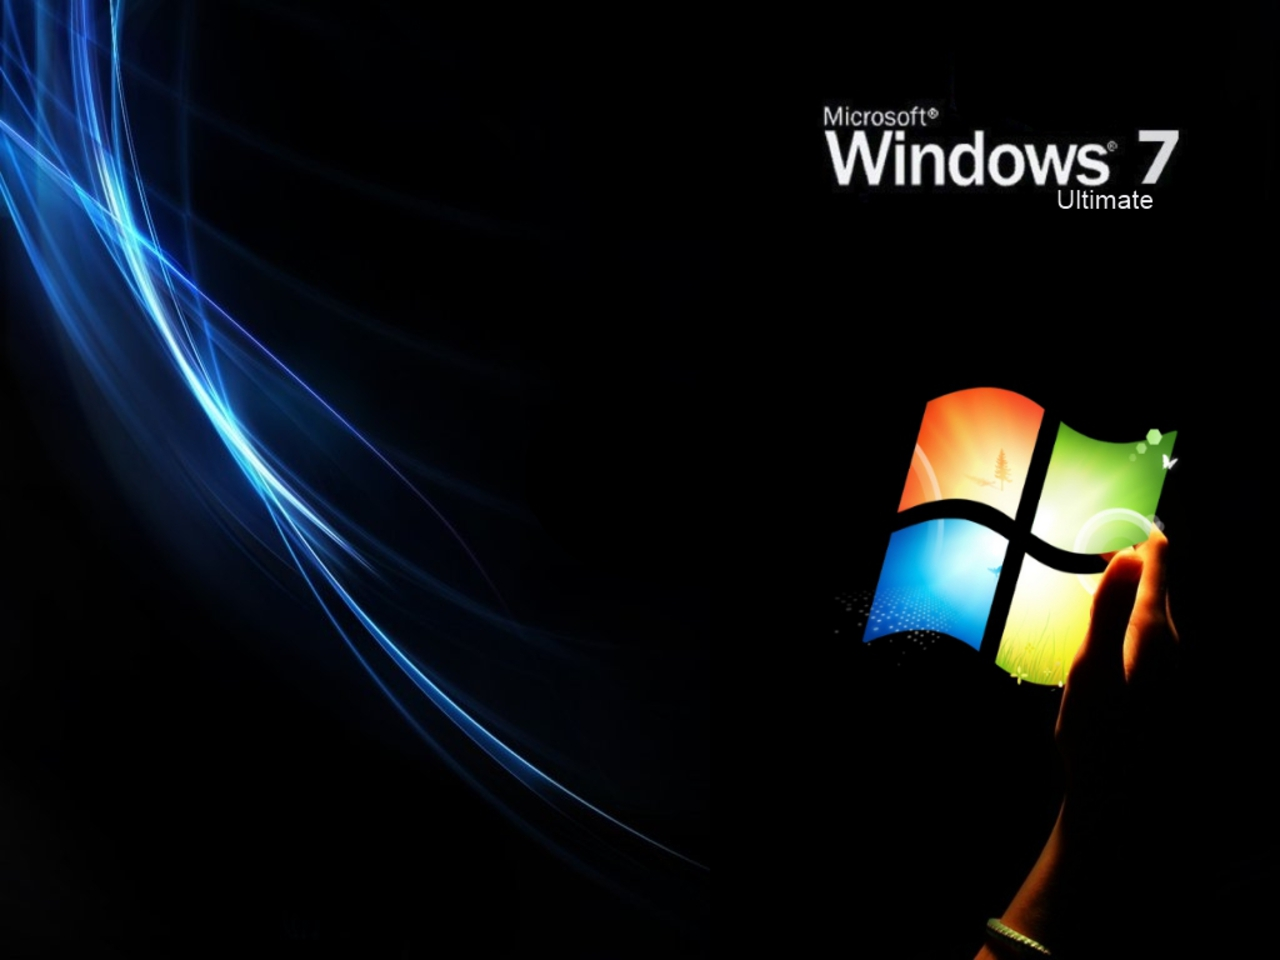 actually there are 2 ways to activate windows 7 pirate 1280x960